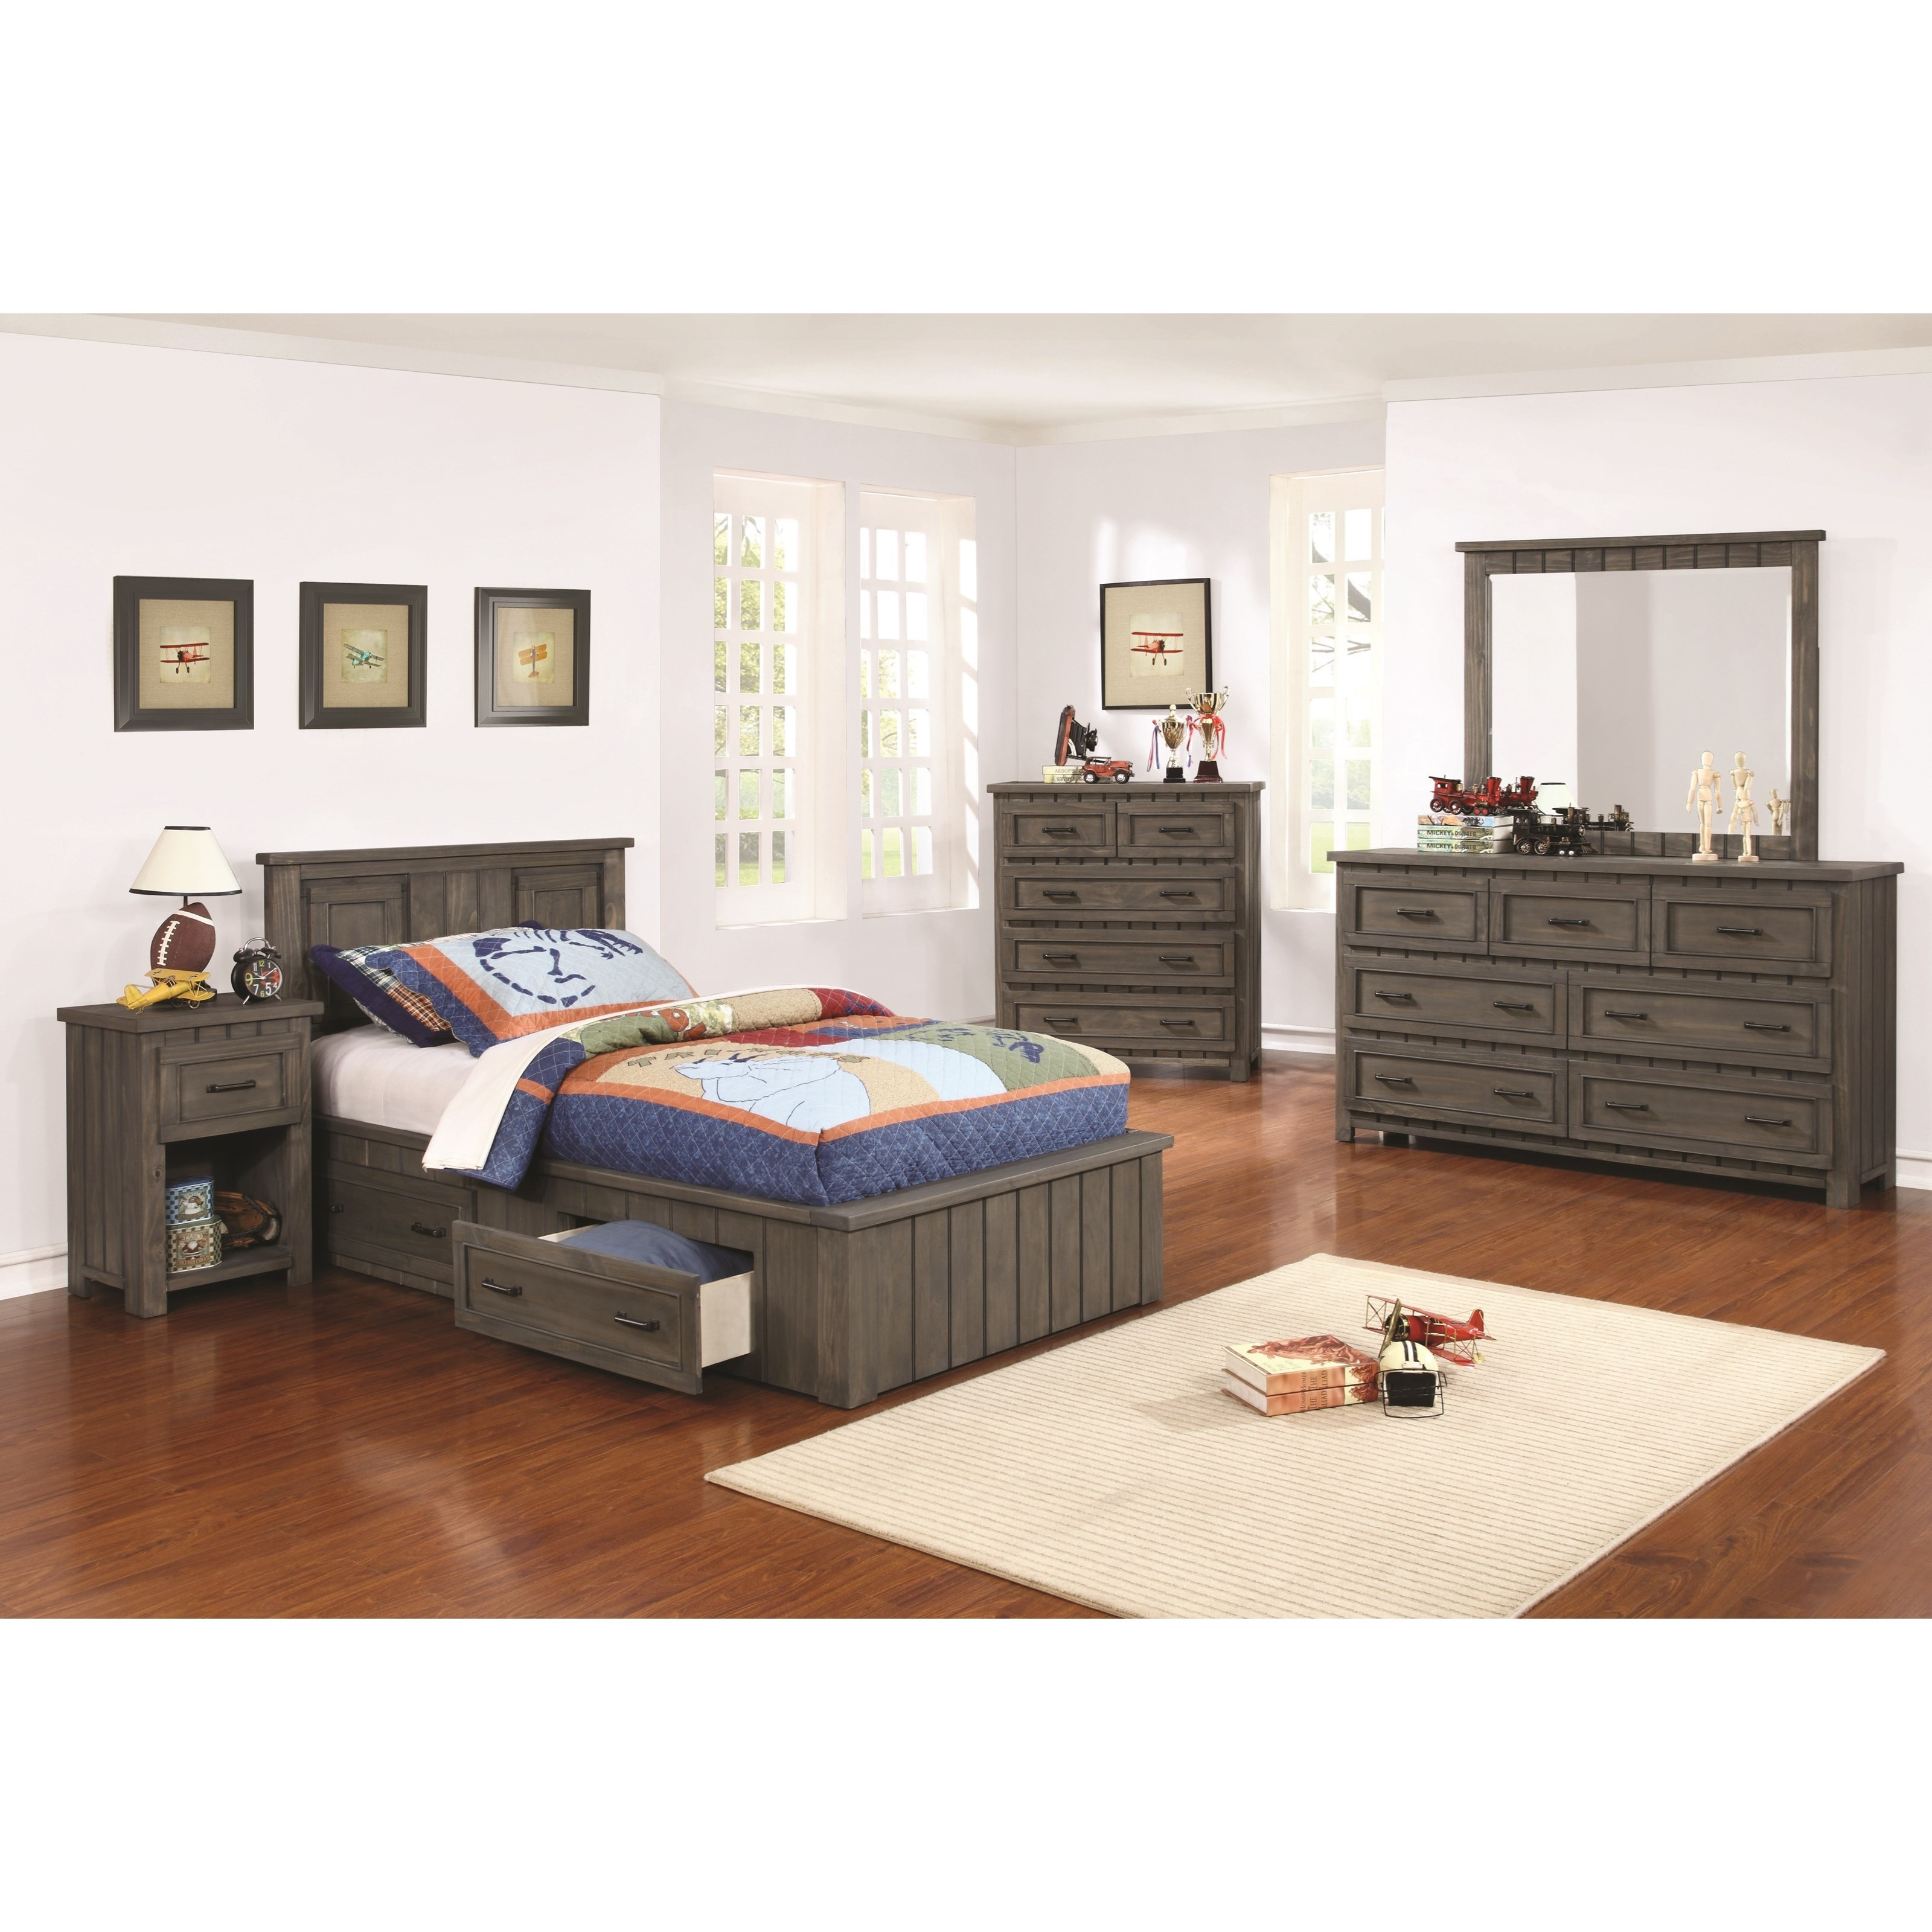 Napoleon Full Bedroom Group by Coaster at Northeast Factory Direct